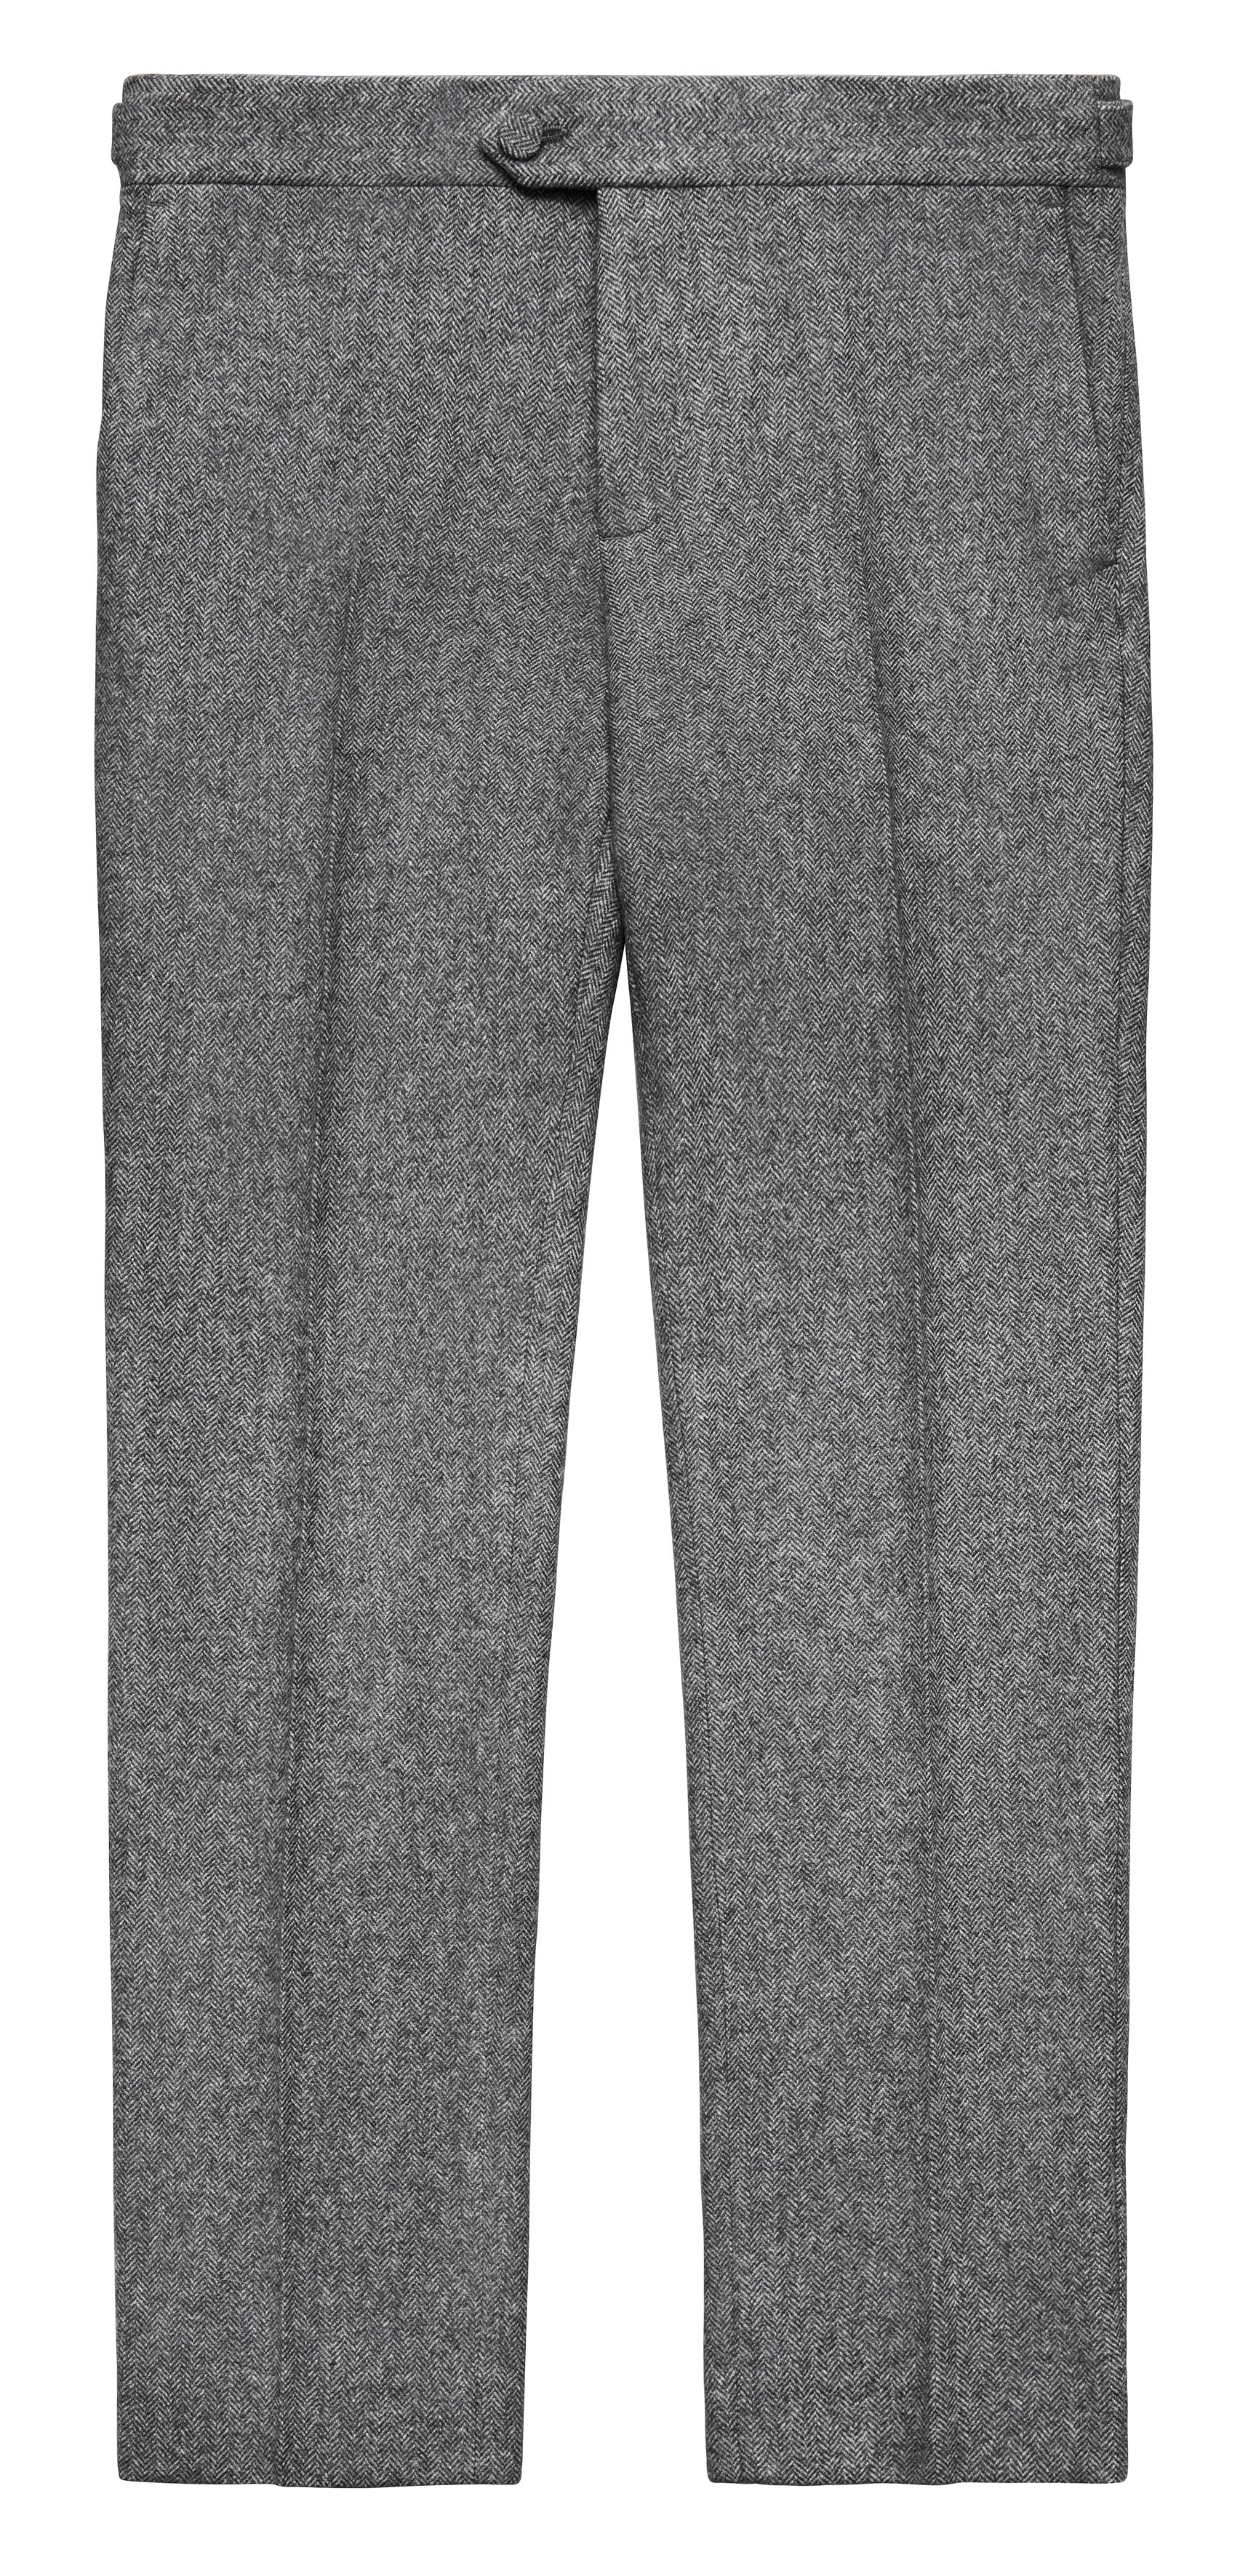 H&M _Erdem_Men_Zlatan_Trousers_79,99EUR